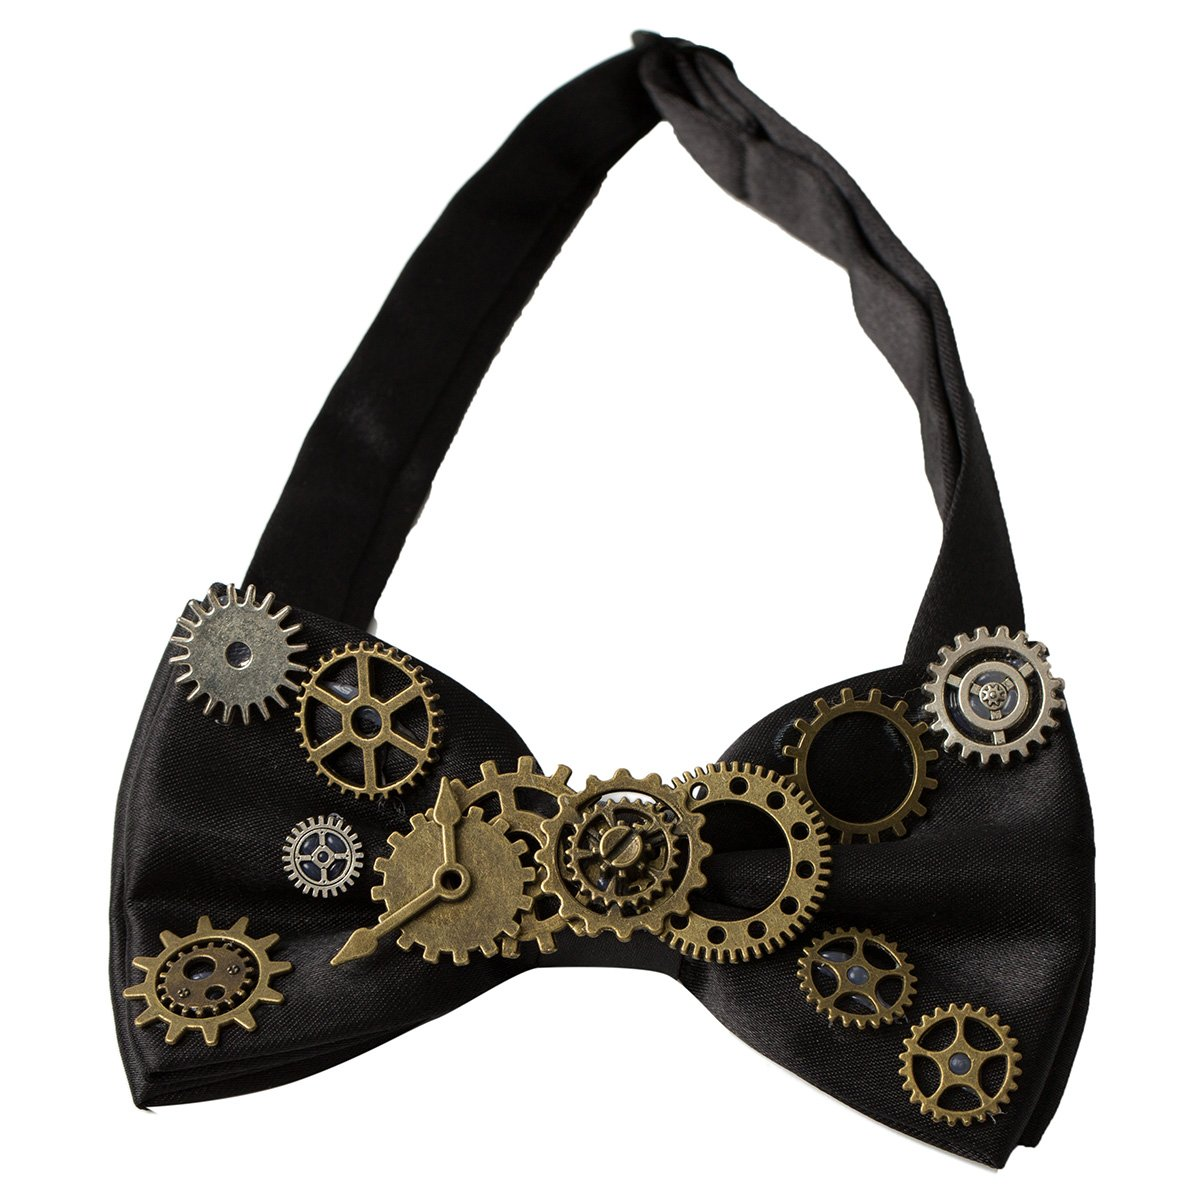 Men's Steampunk Goggles, Guns, Gadgets & Watches KOGOGO Steampunk Gears Bowtie Retro Costume Accessory  AT vintagedancer.com